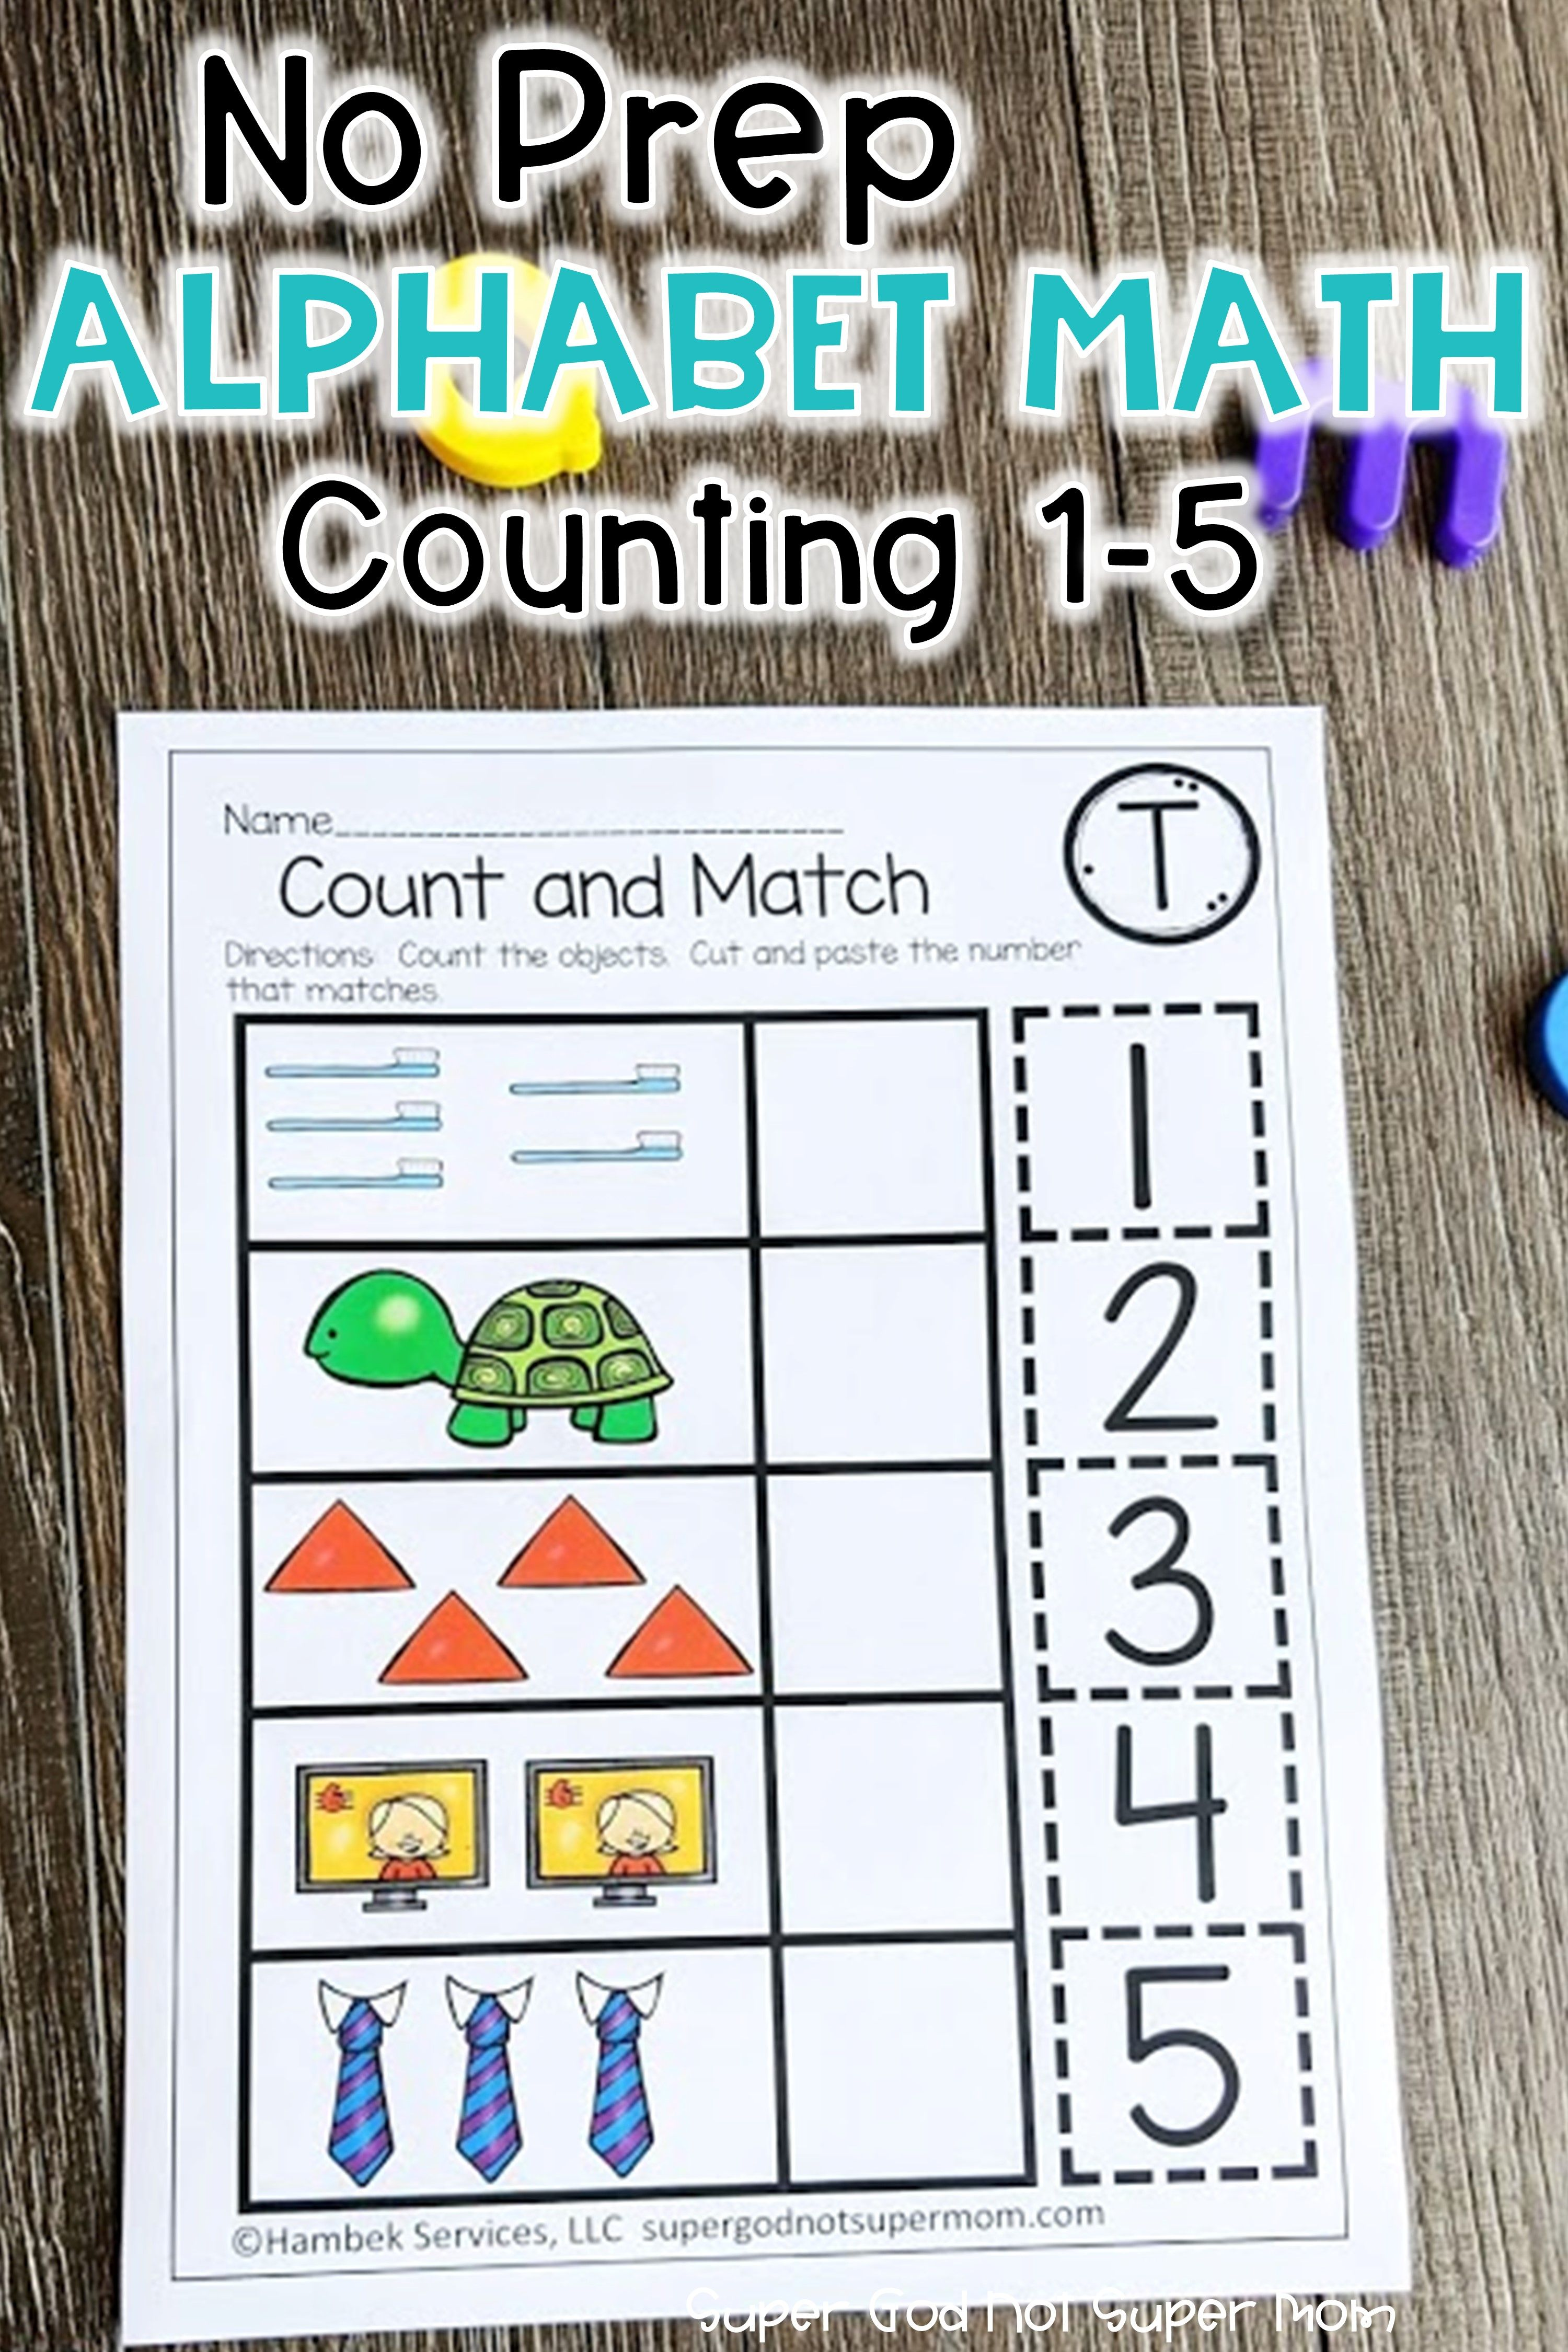 Preschool Math Worksheets Counting 1 5 With The Alphabet